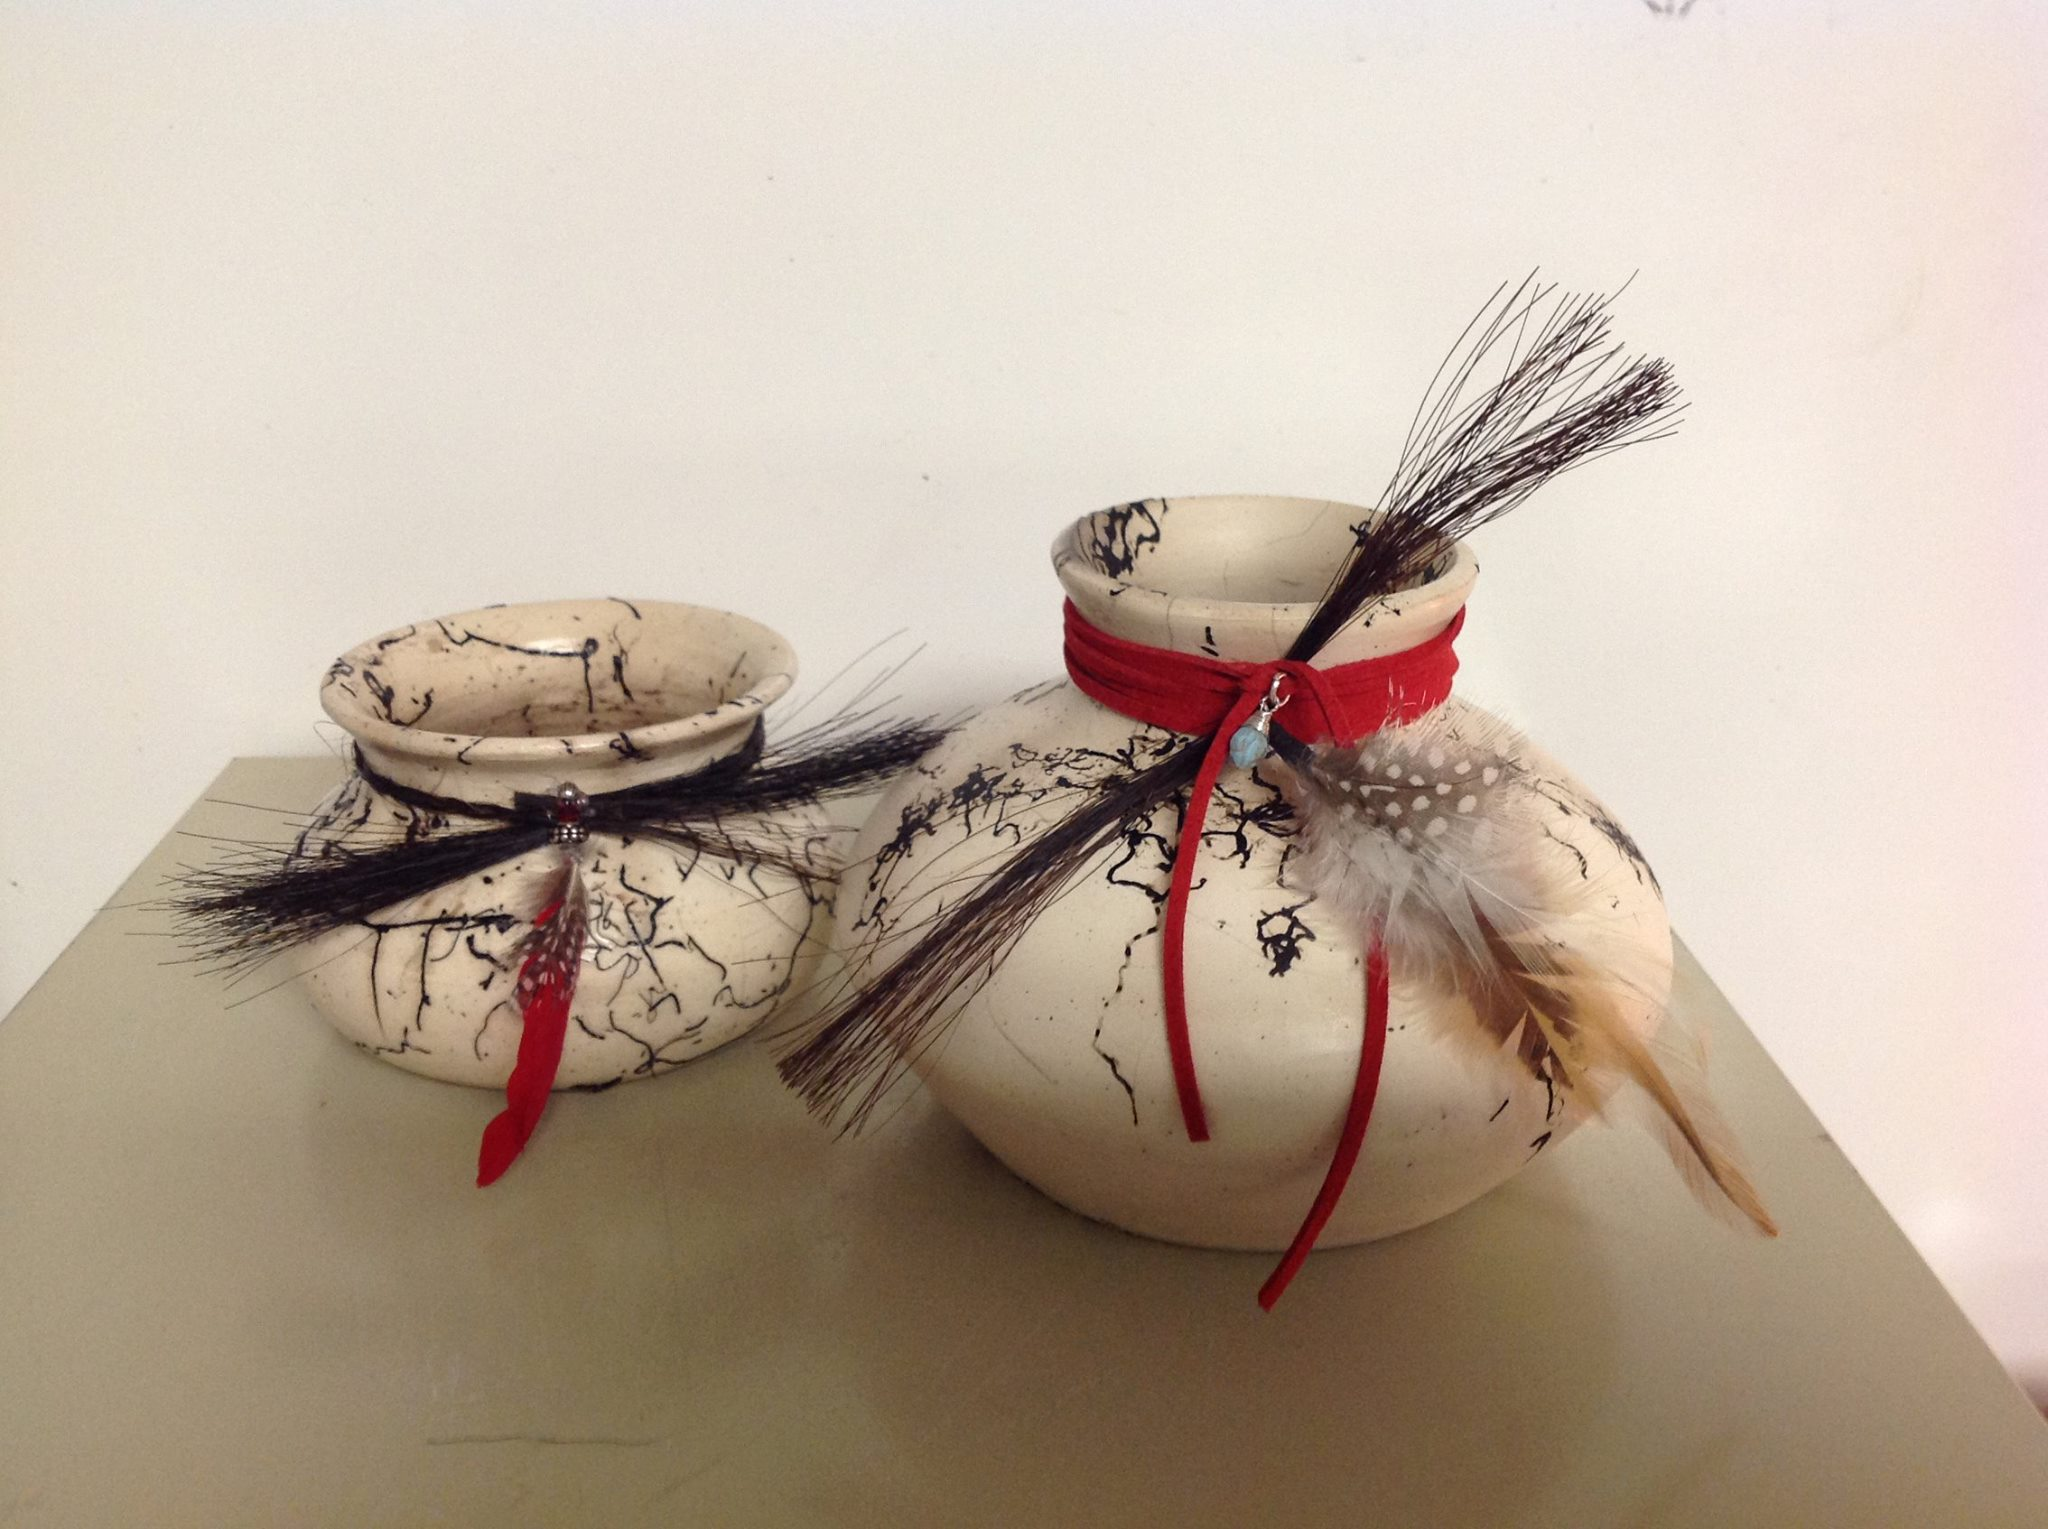 Horse hair custom pottery available in several sizes. Use your own horse's tail to create a memorial pot or just a precious keepsake. For decorative use only.